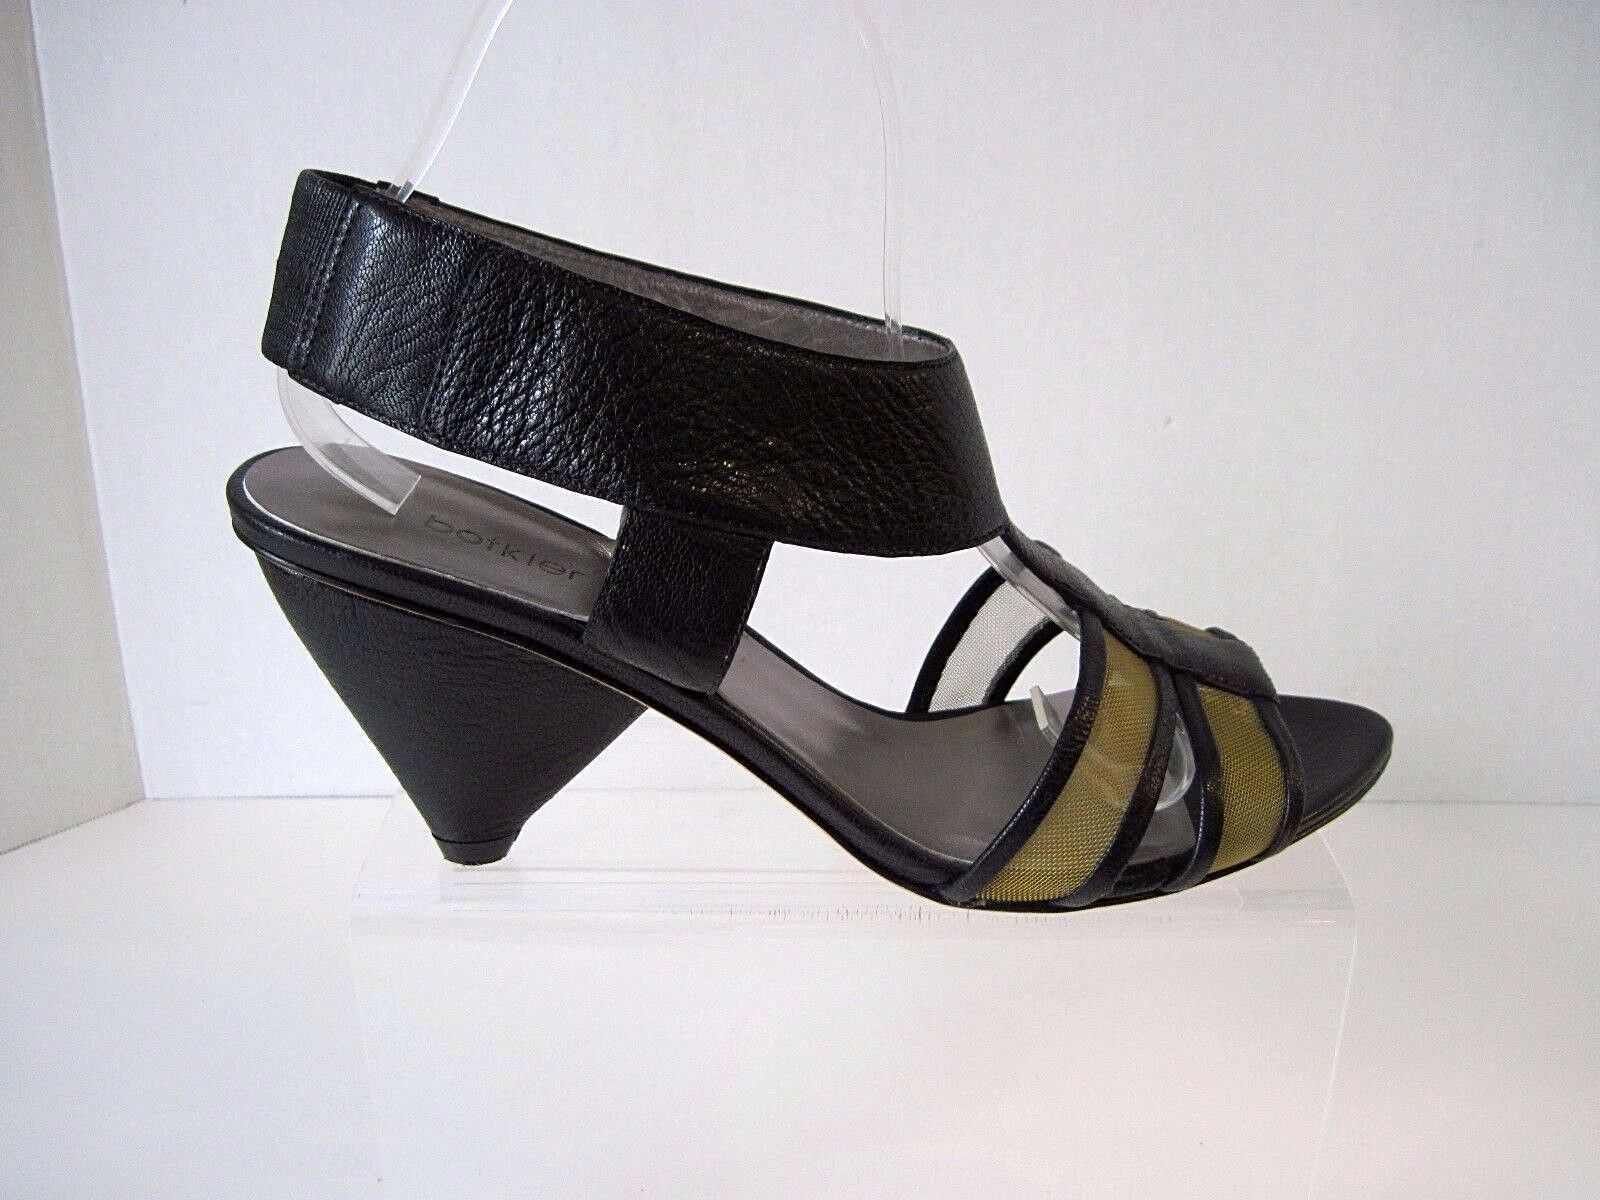 BOTKIER BLACK LEATHER AND GOLD MESH SANDALS, 3